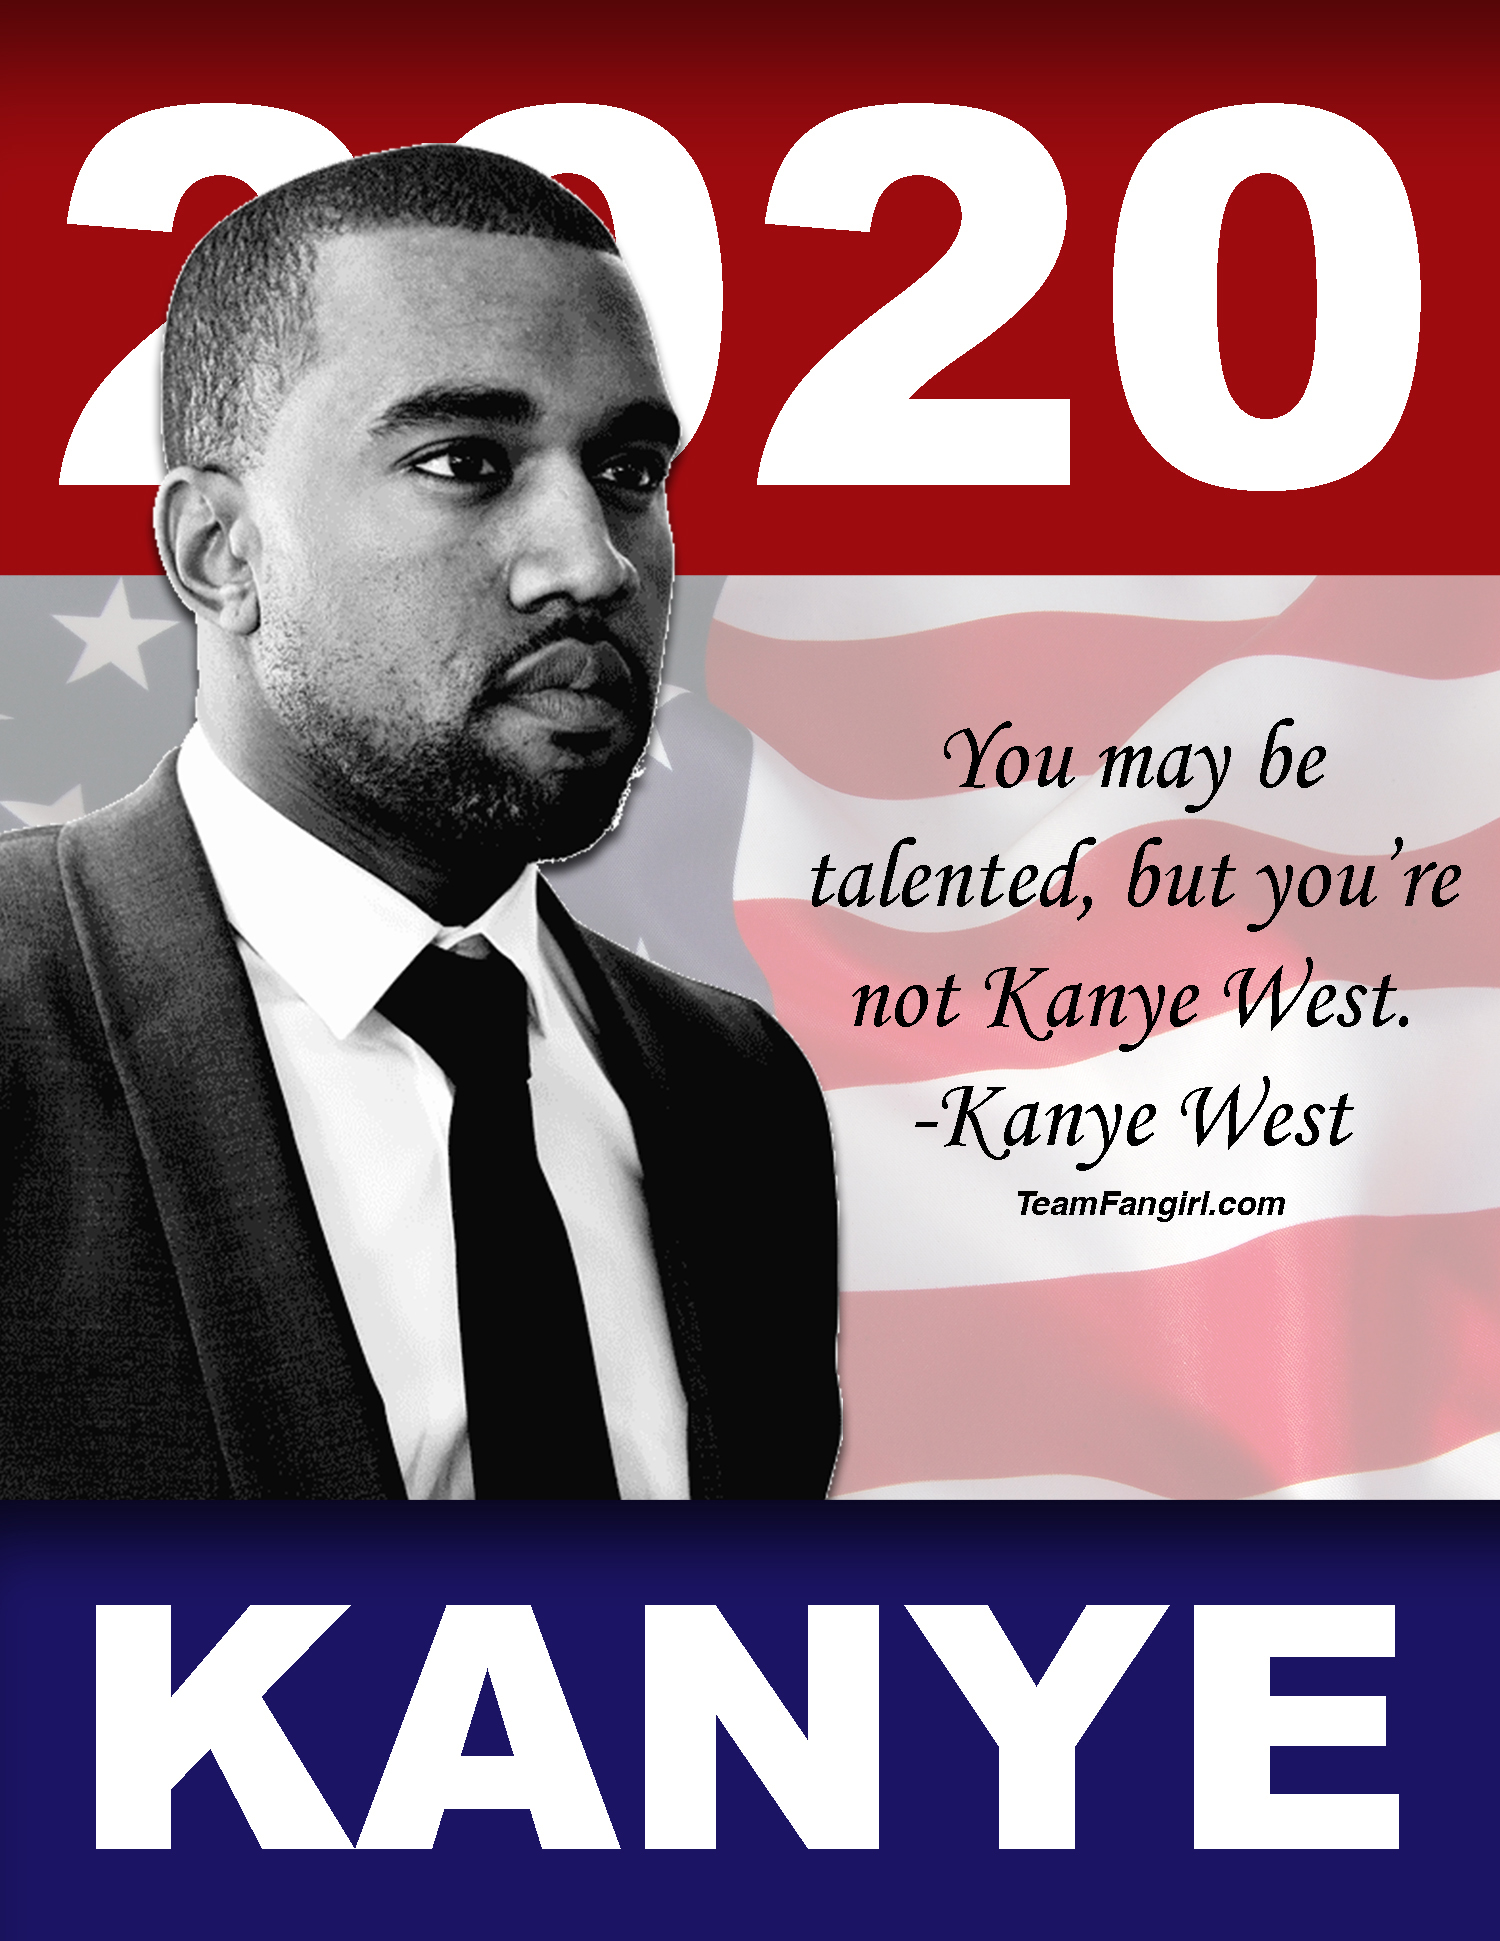 Kanye West's (Un)official 2020 Campaign Posters | Team Fangirl